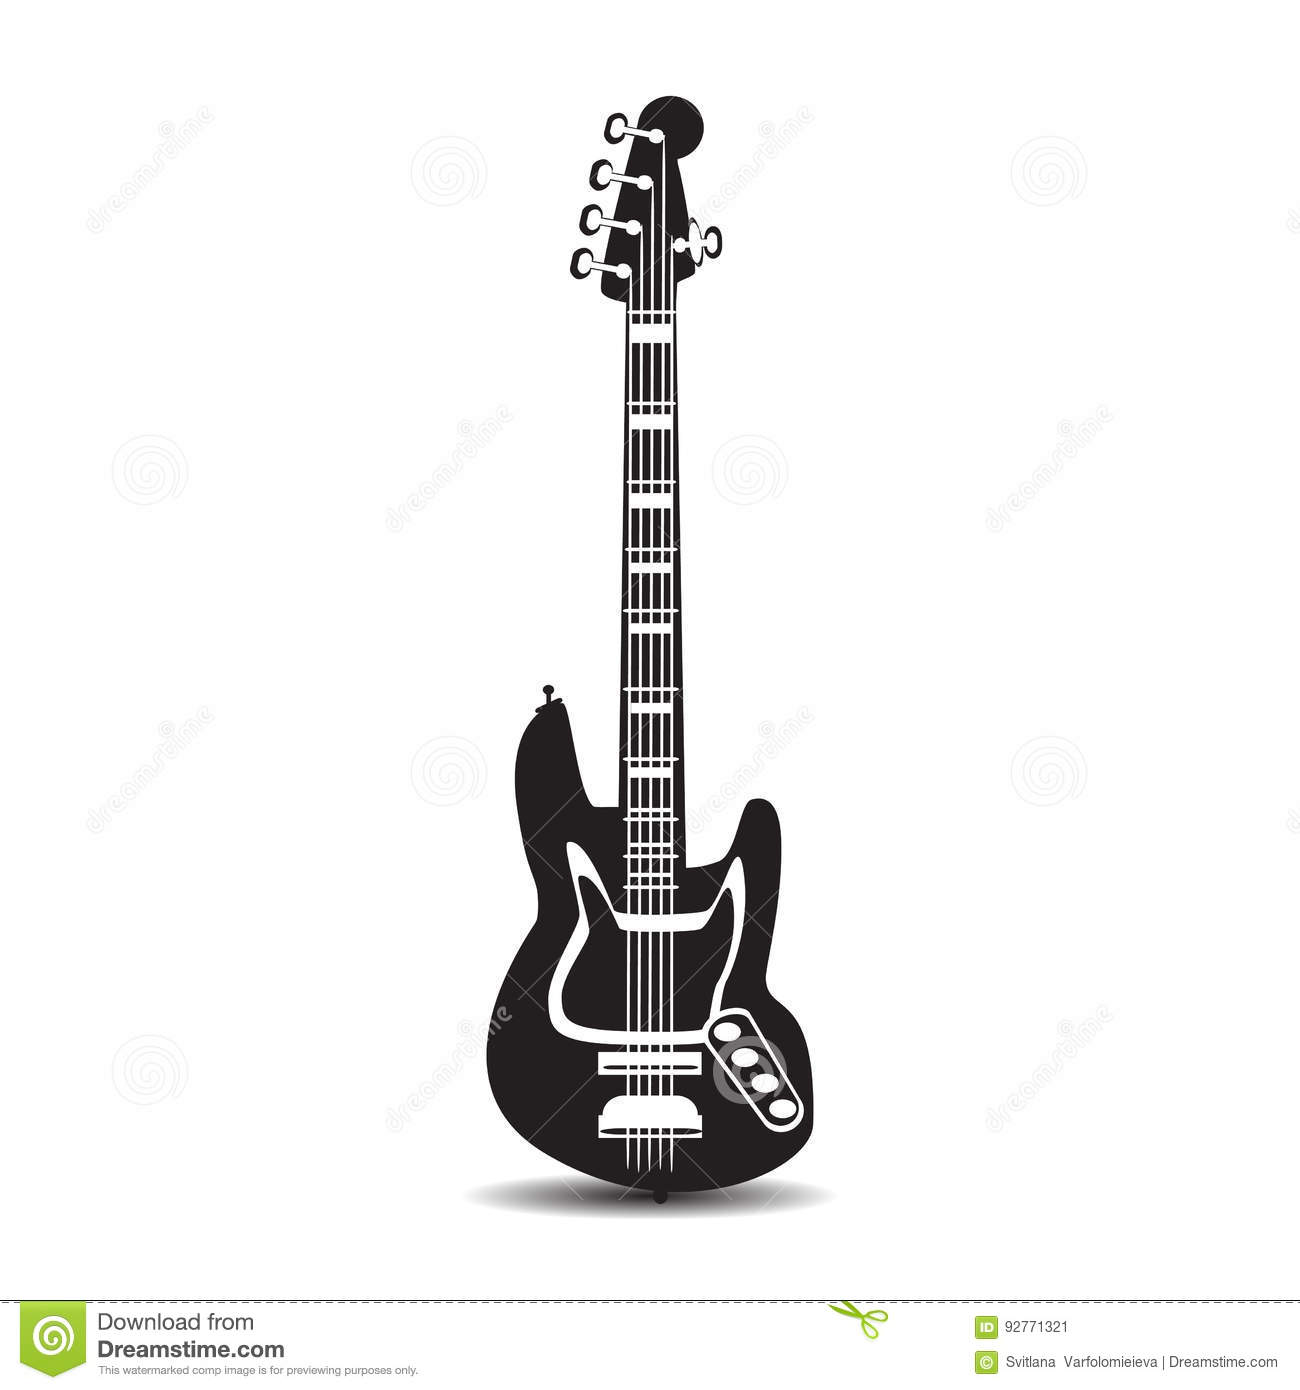 Electric guitar, vector illustration in flat style